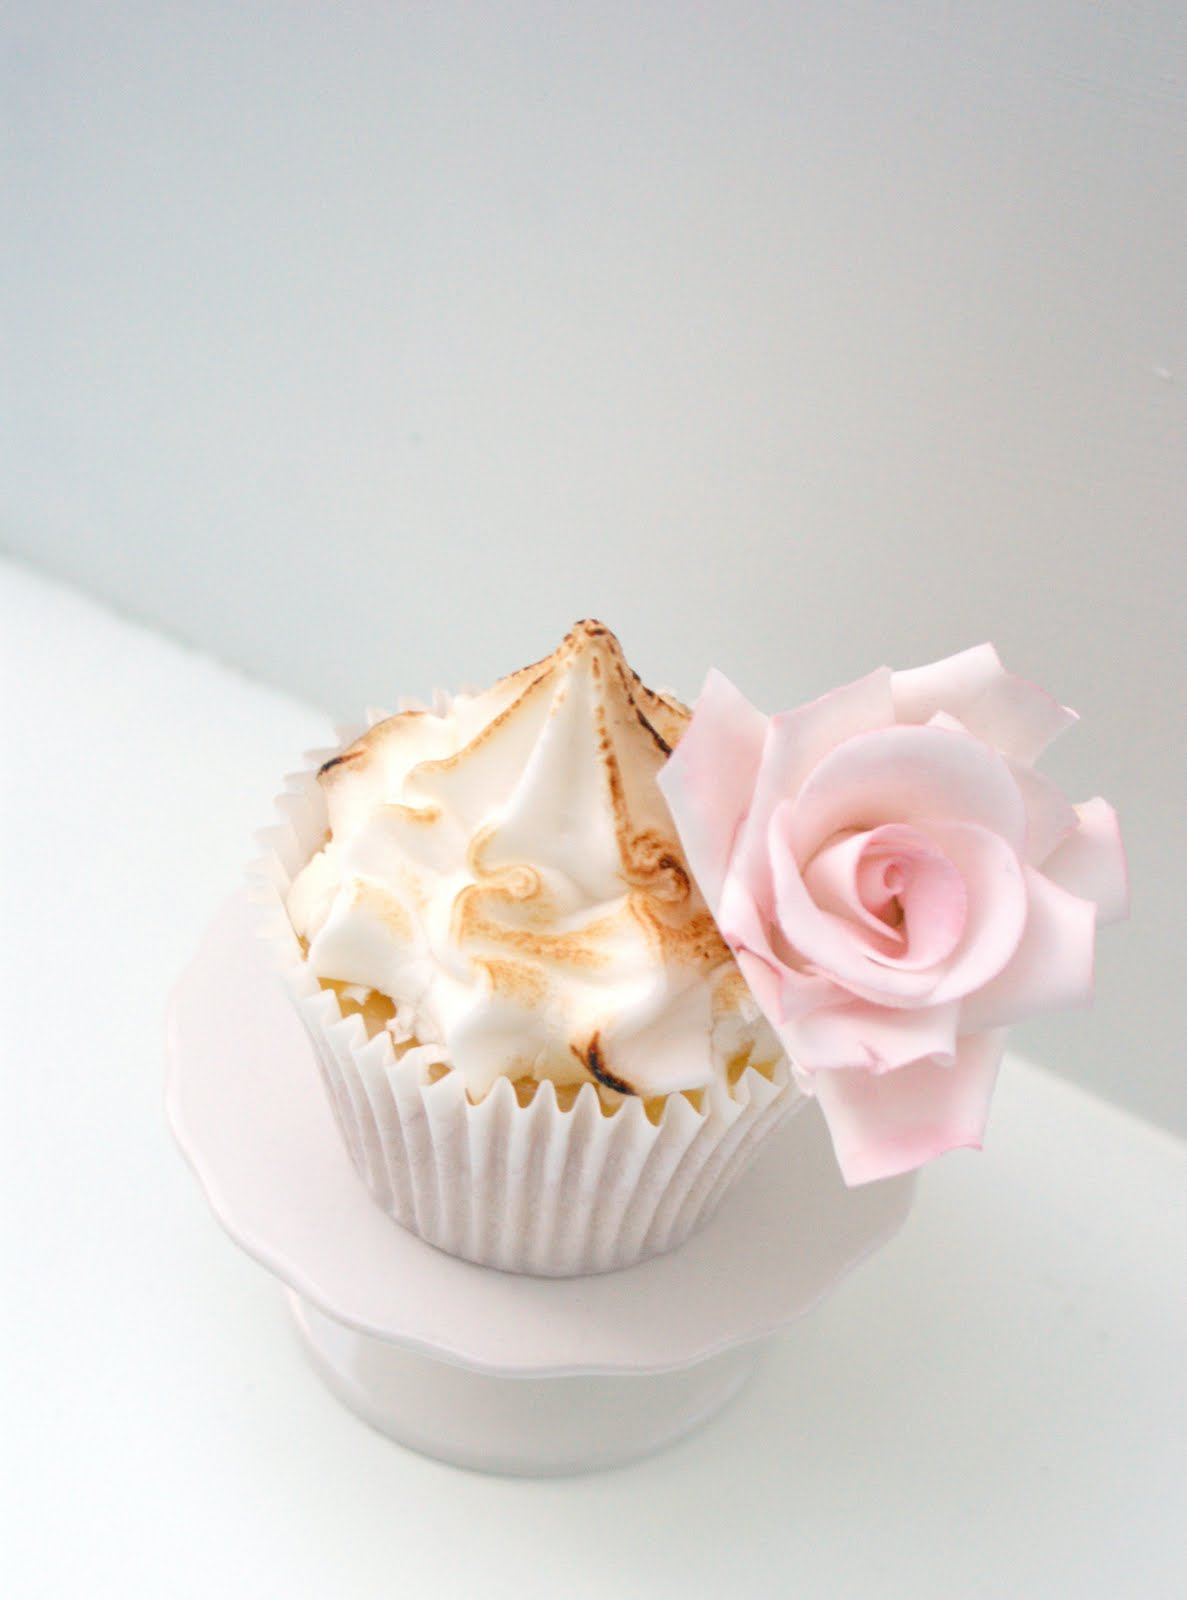 Icing Bliss: Lemon Meringue Cupcake Bliss